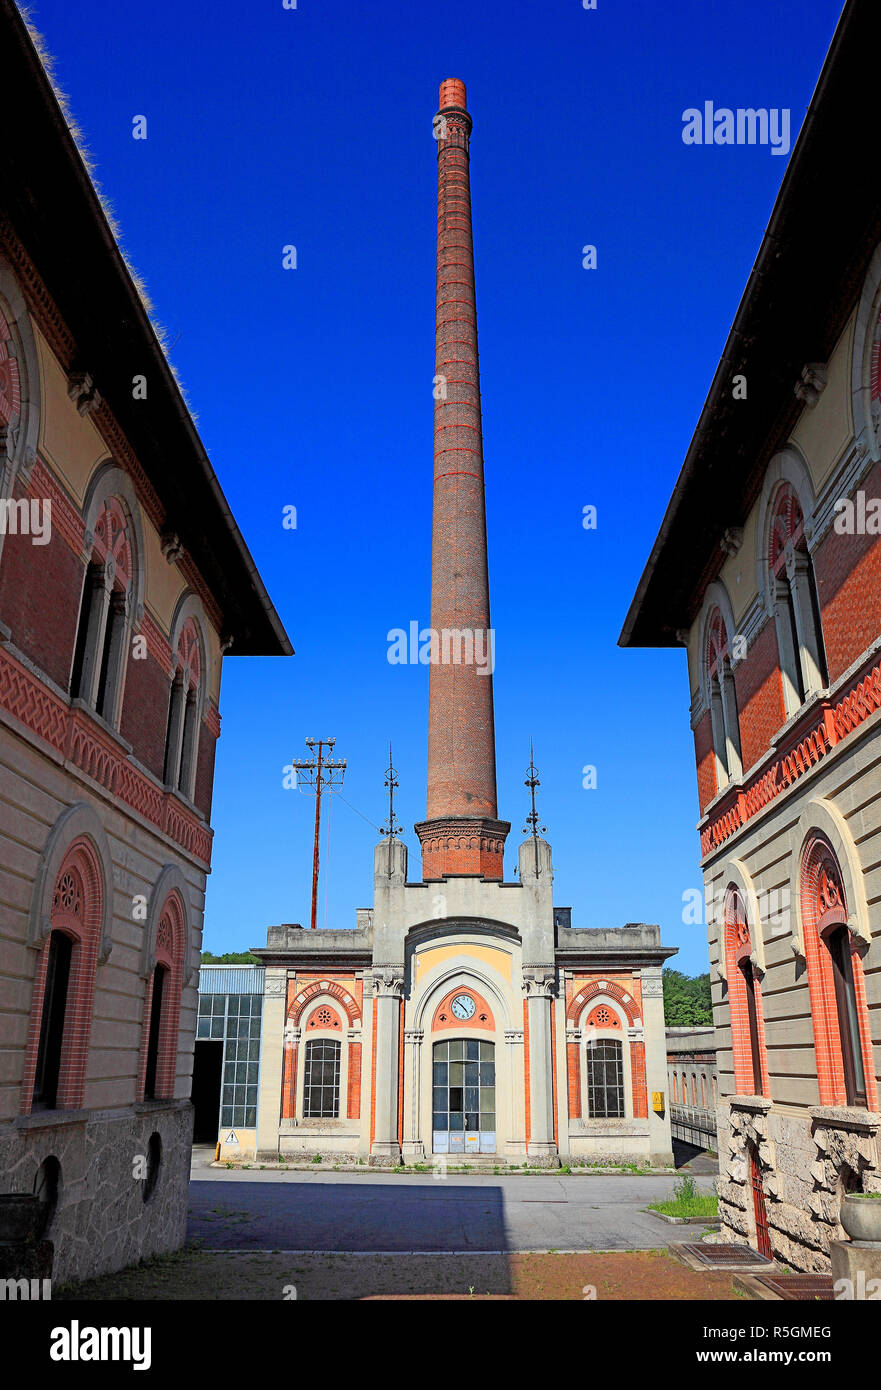 Building of the former textile factory, industrial monument, Crespi d'Adda, Lombardy, Italy - Stock Image